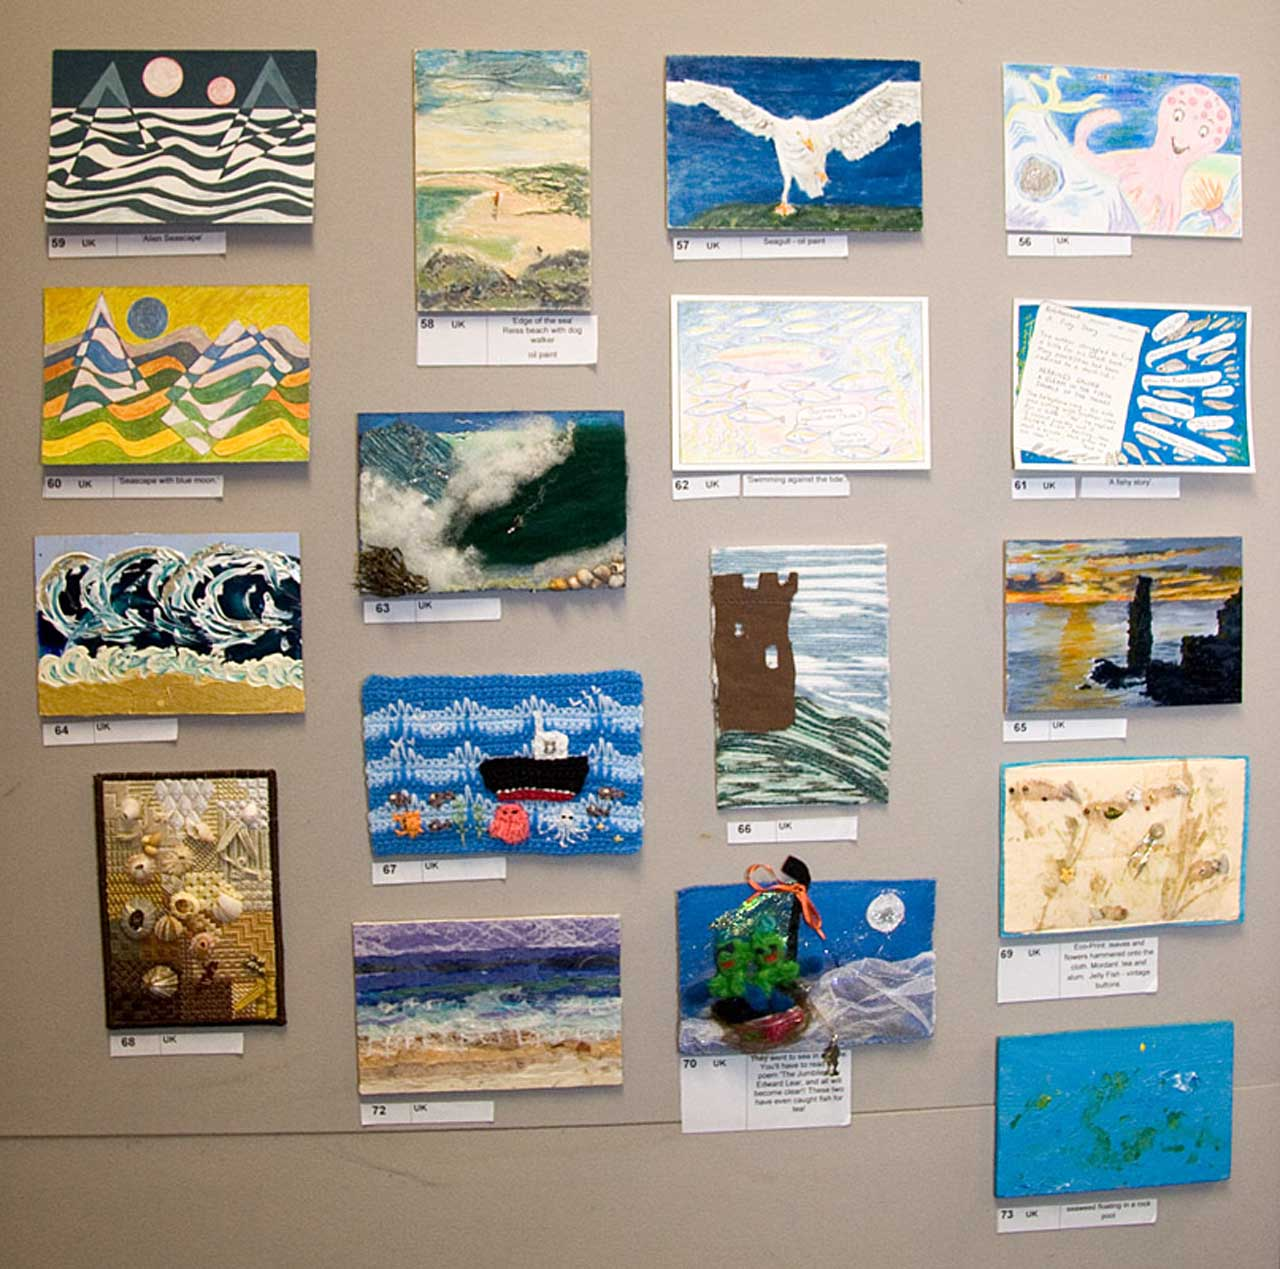 Photo: Postcard SEA Fundraiser and Exhibition Launched